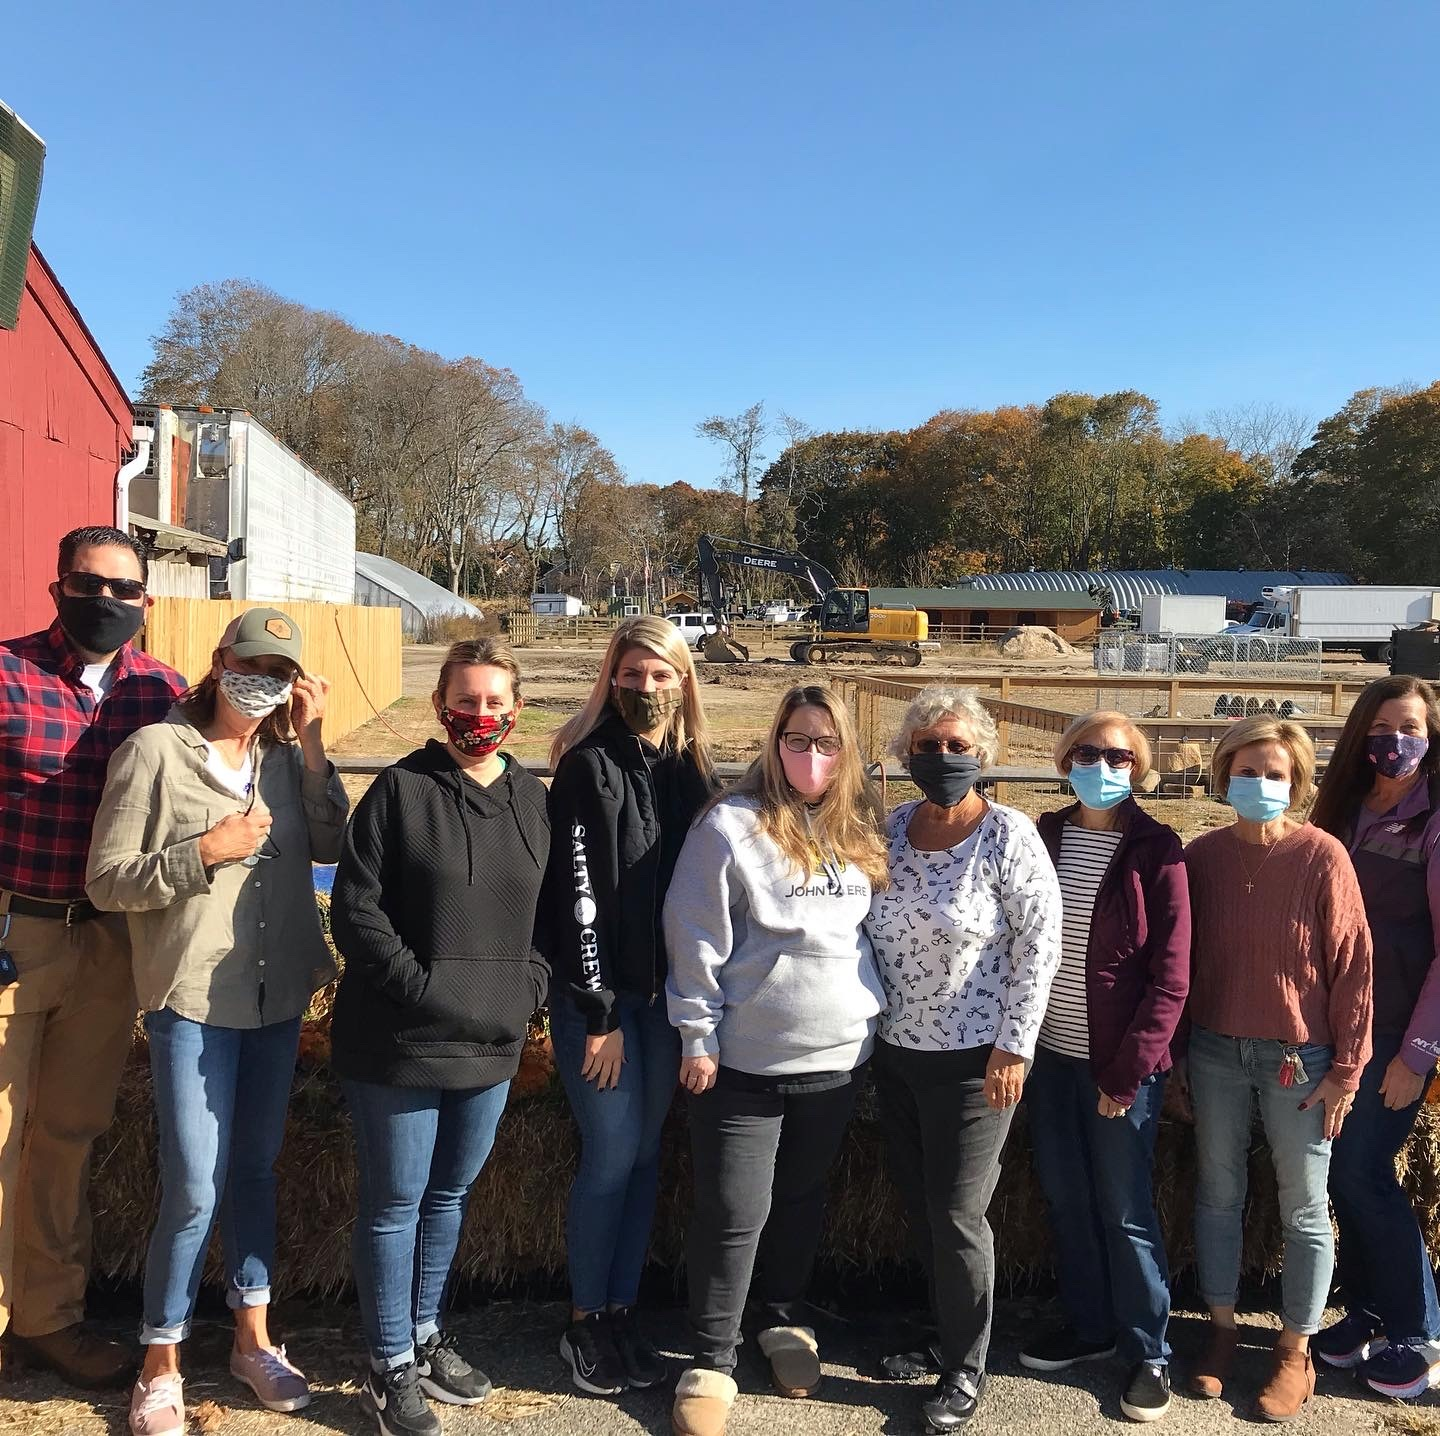 Micah Schlendorf, President of the Eastport Chamber of Commerce with members of the Eastport Green Project and the team from Olish Farms.